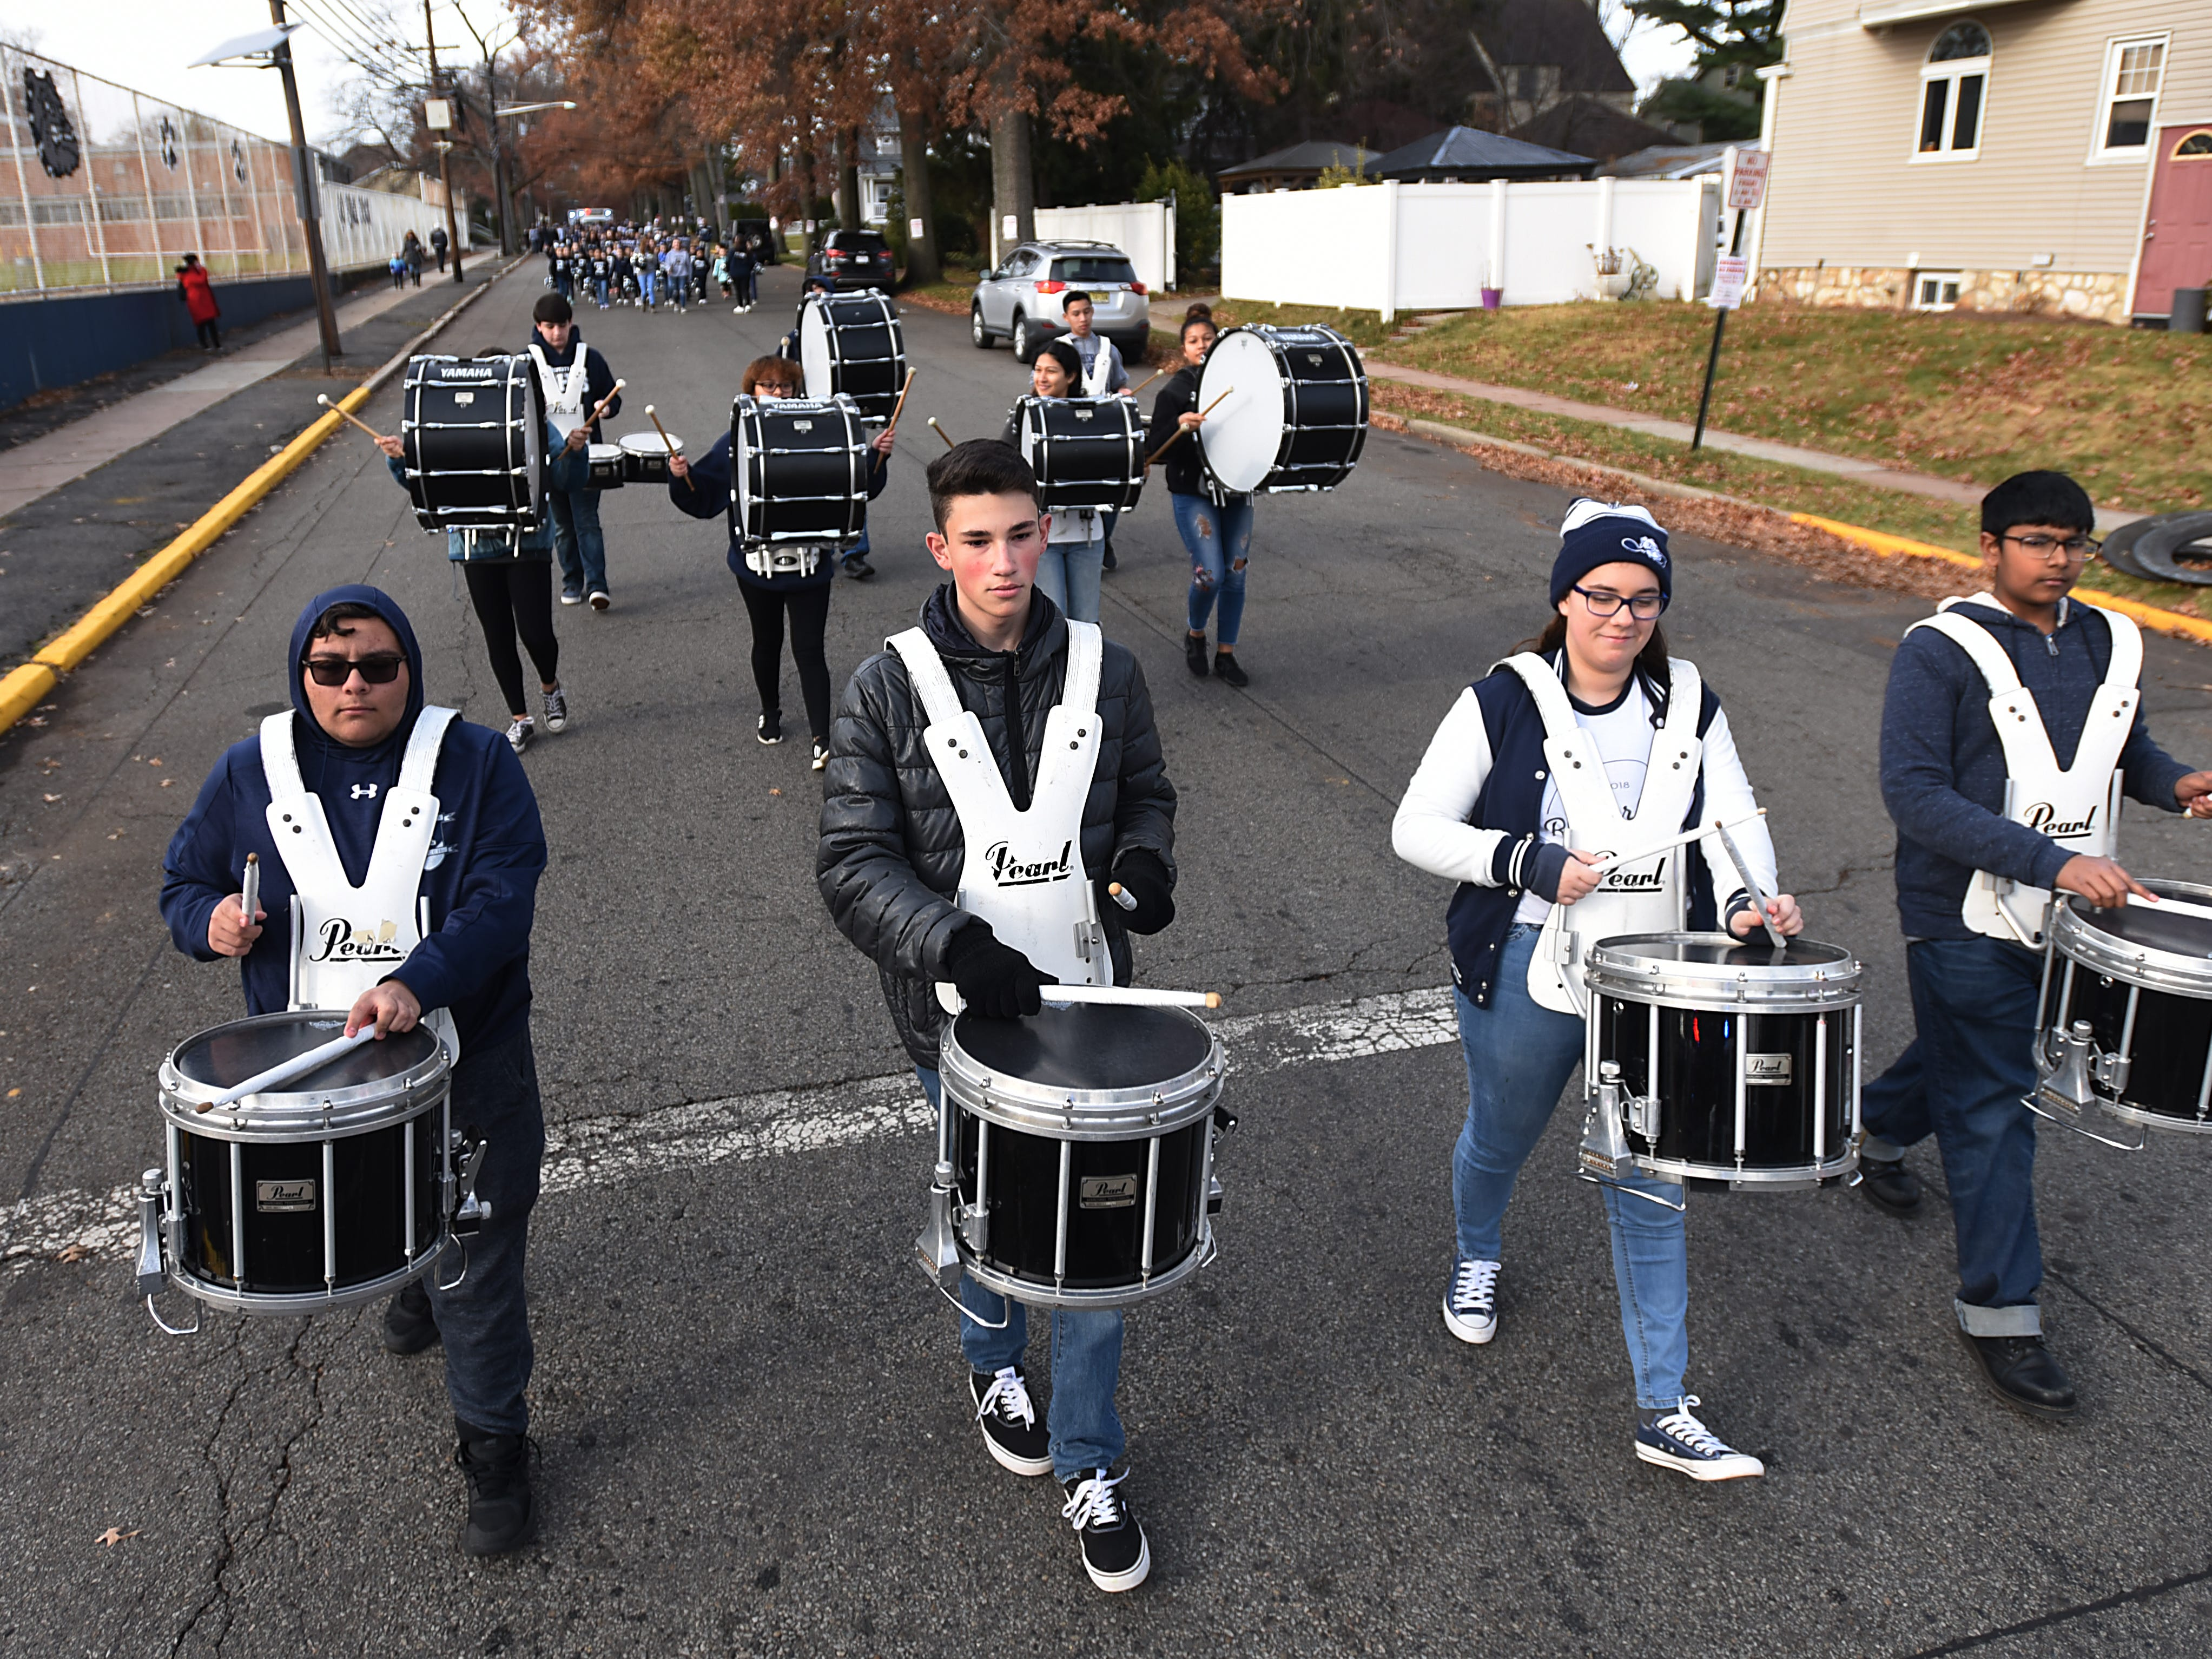 The drum line leads the Rutherford Football parade in Rutherford on Saturday December 1, 2018.